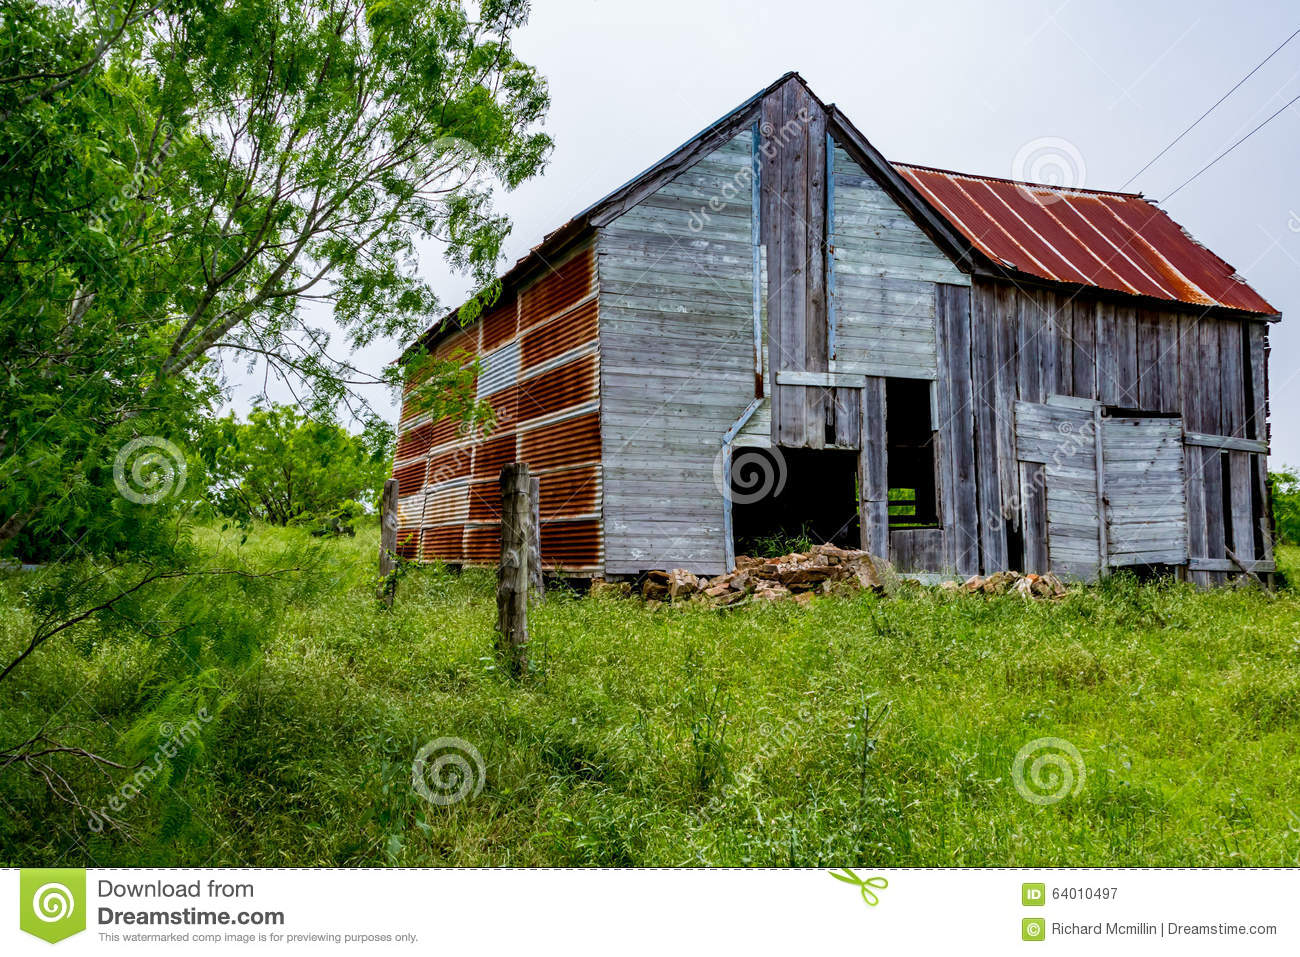 Building a shed on a hill - Old Texas Farm Building Royalty Free Stock Photography